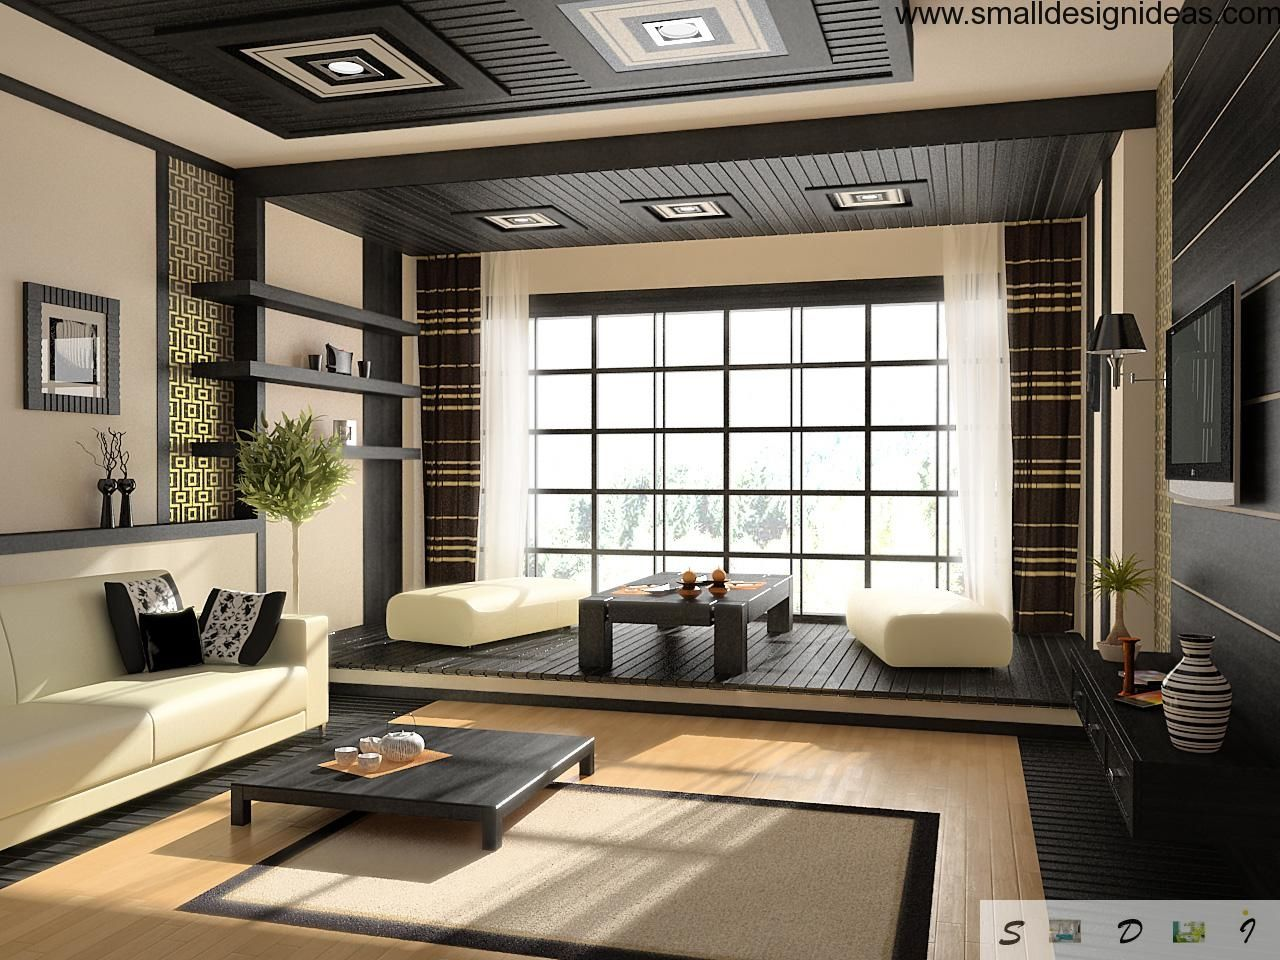 best 25 japanese interior design ideas only on pinterest 10 things to know before remodeling your interior into japanese style